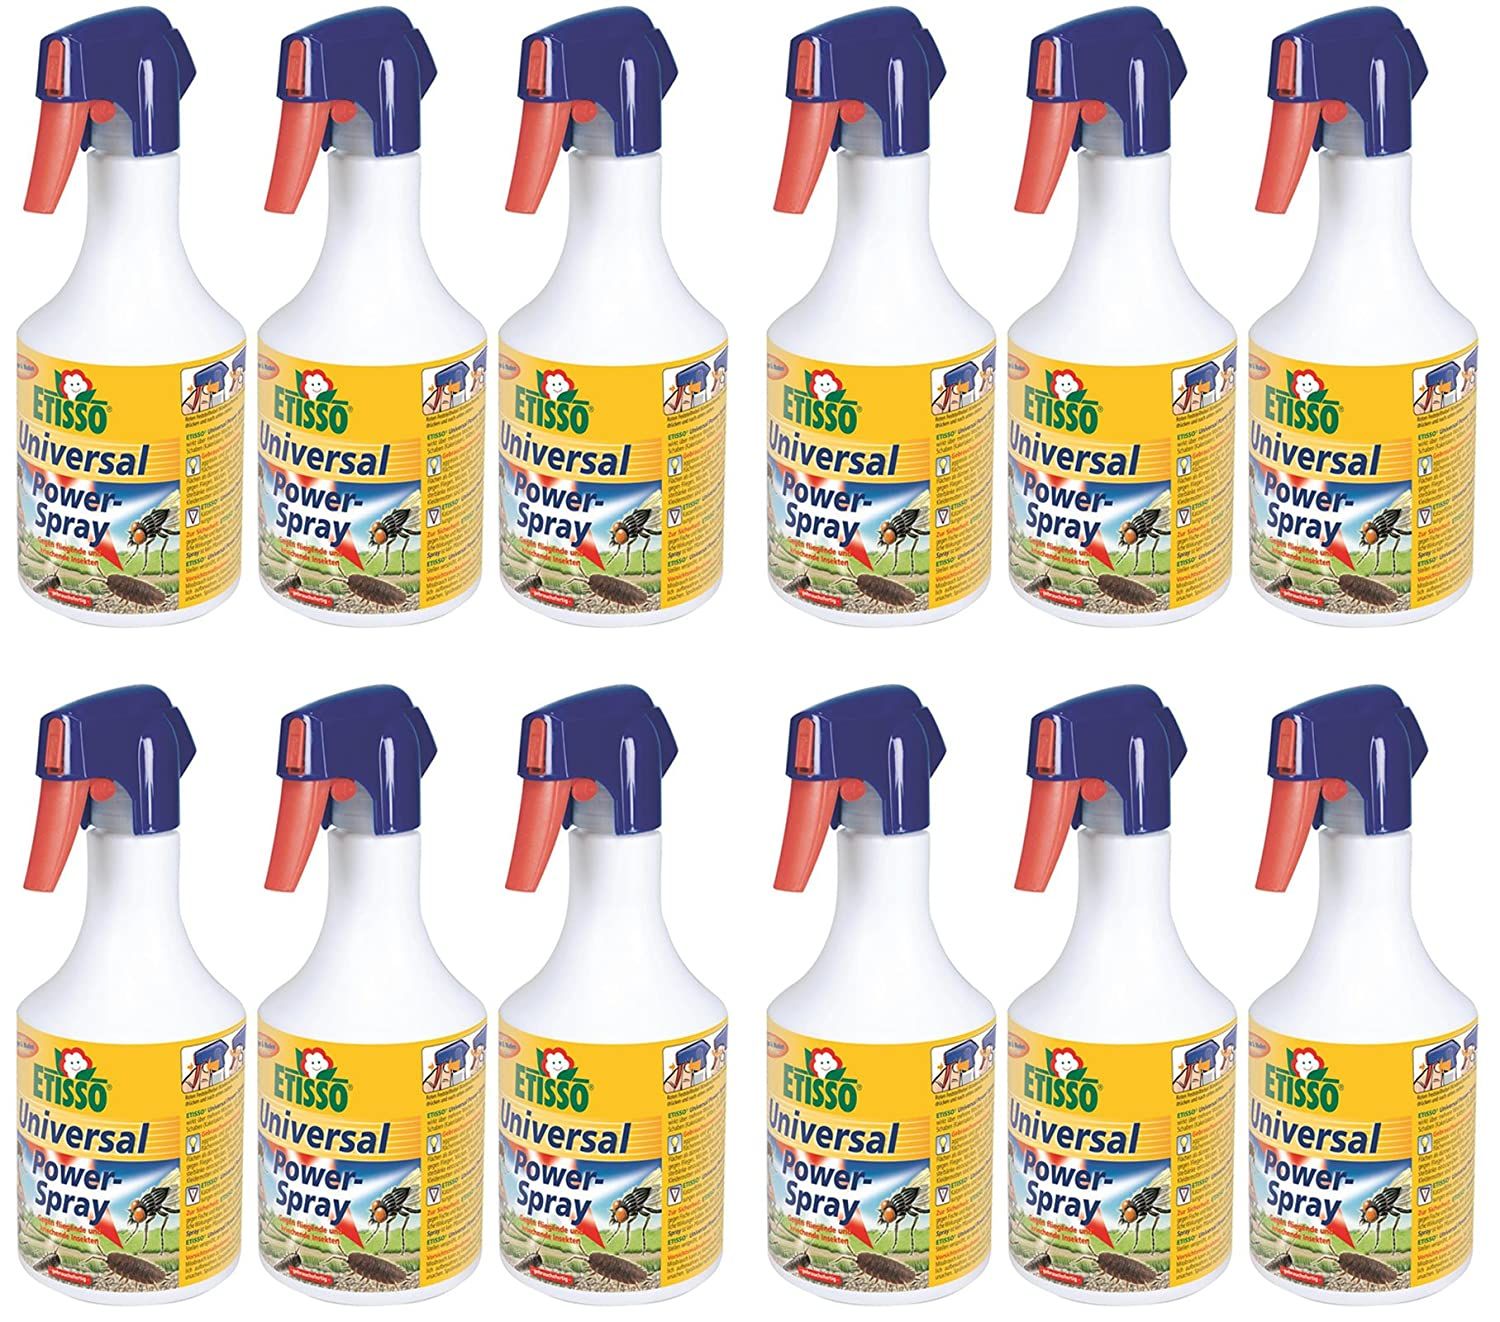 12 x 500 ml ETISSO Universal Power-Spray Insektenspray gegen Fliegen Mücken Wespen etc.